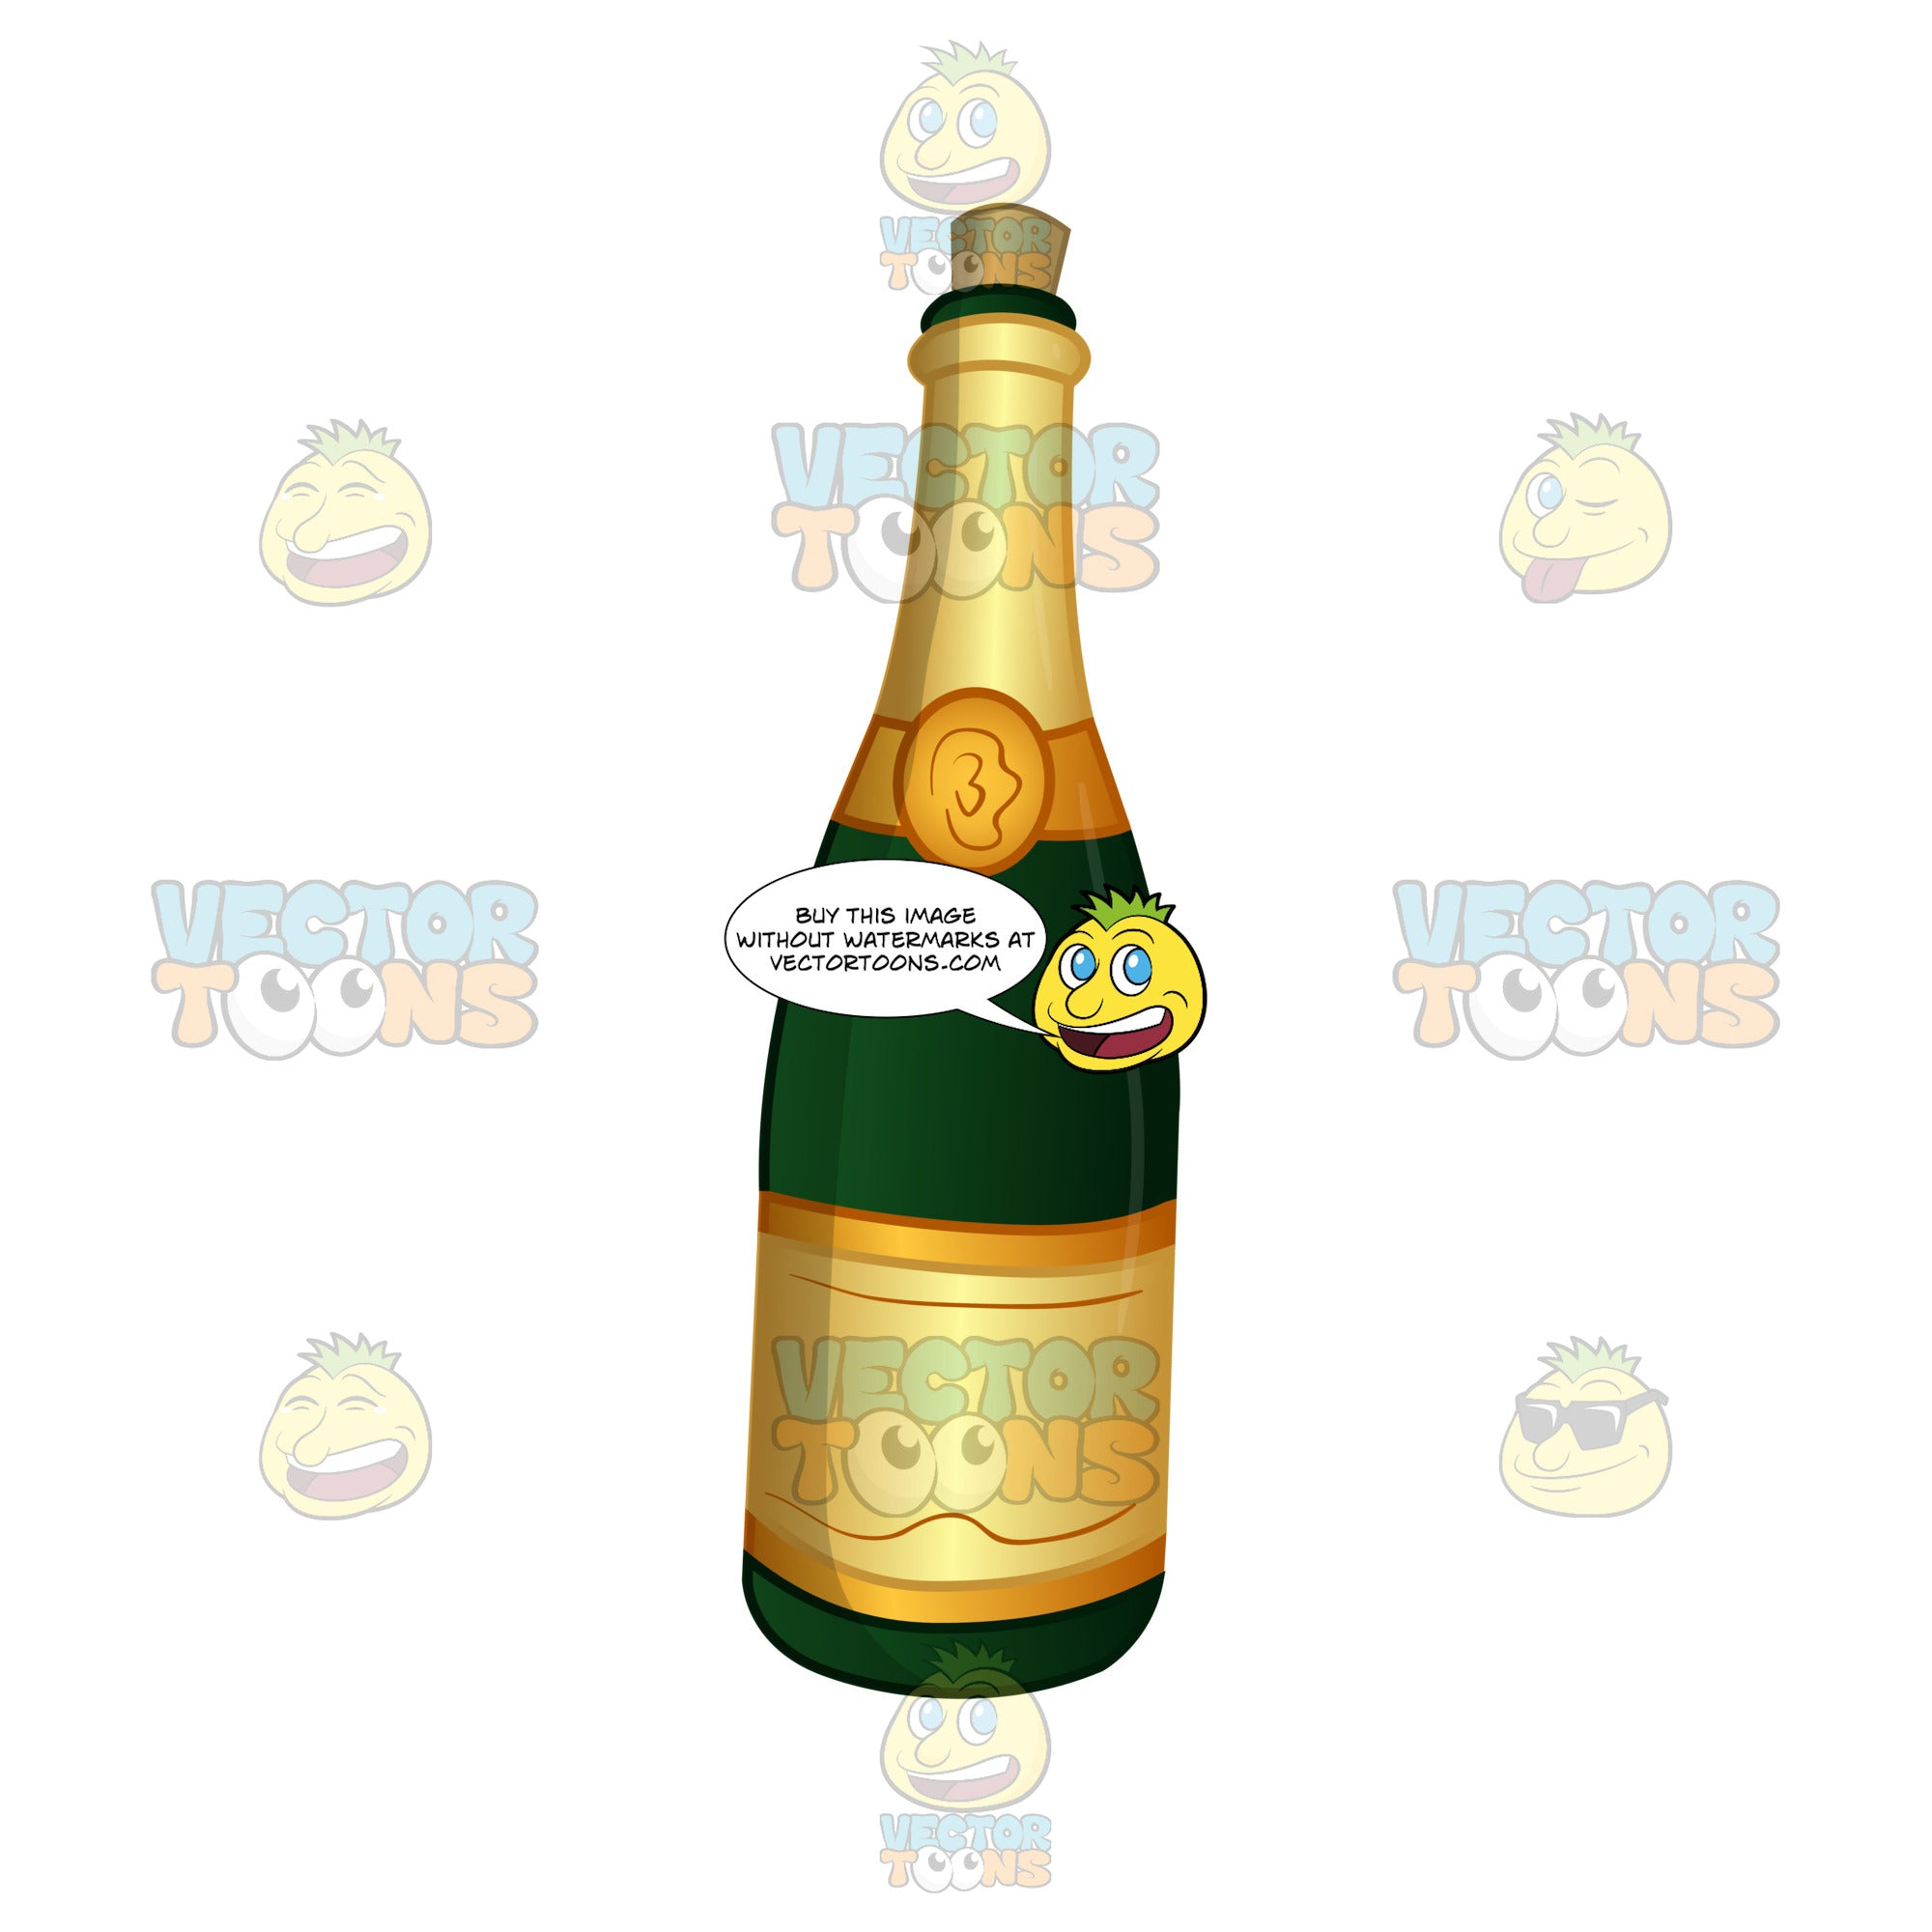 Champagne Bottle With The Cork In It